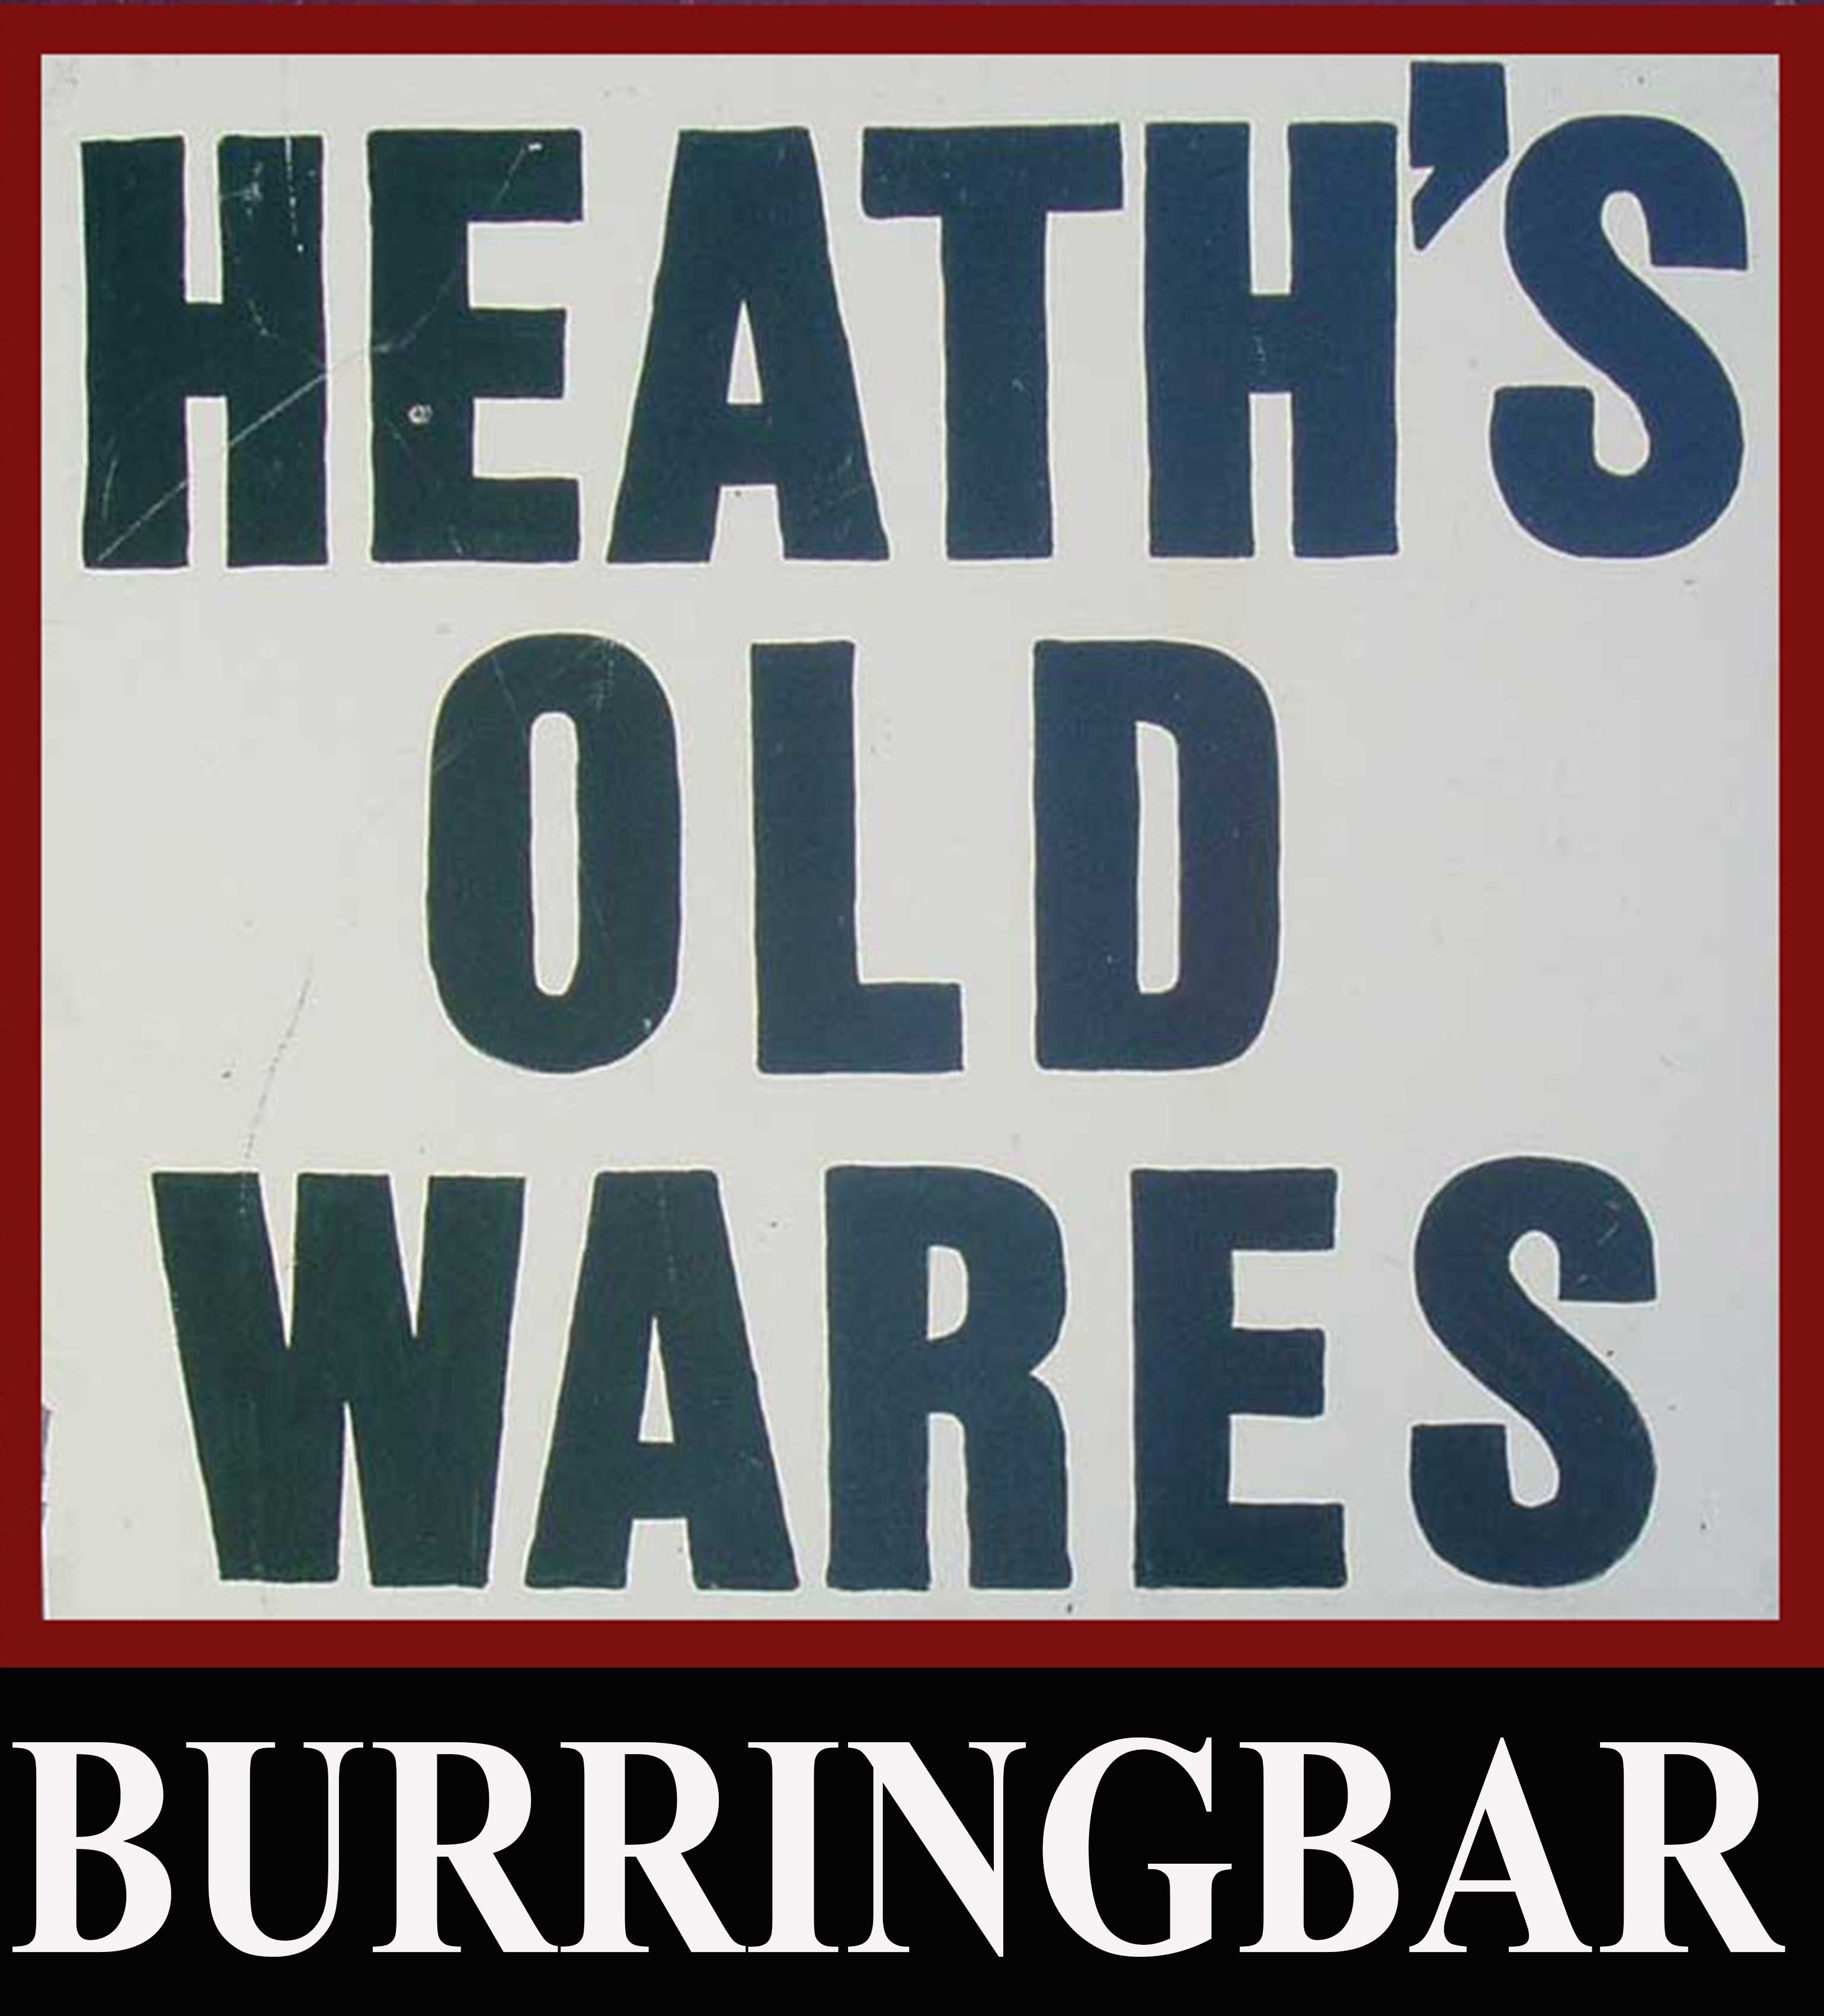 Heath's Old Wares 19-21 Broadway, Burringbar NSW Australia 2483. Ph 0266771181 Open 7 days 9am - 5pm